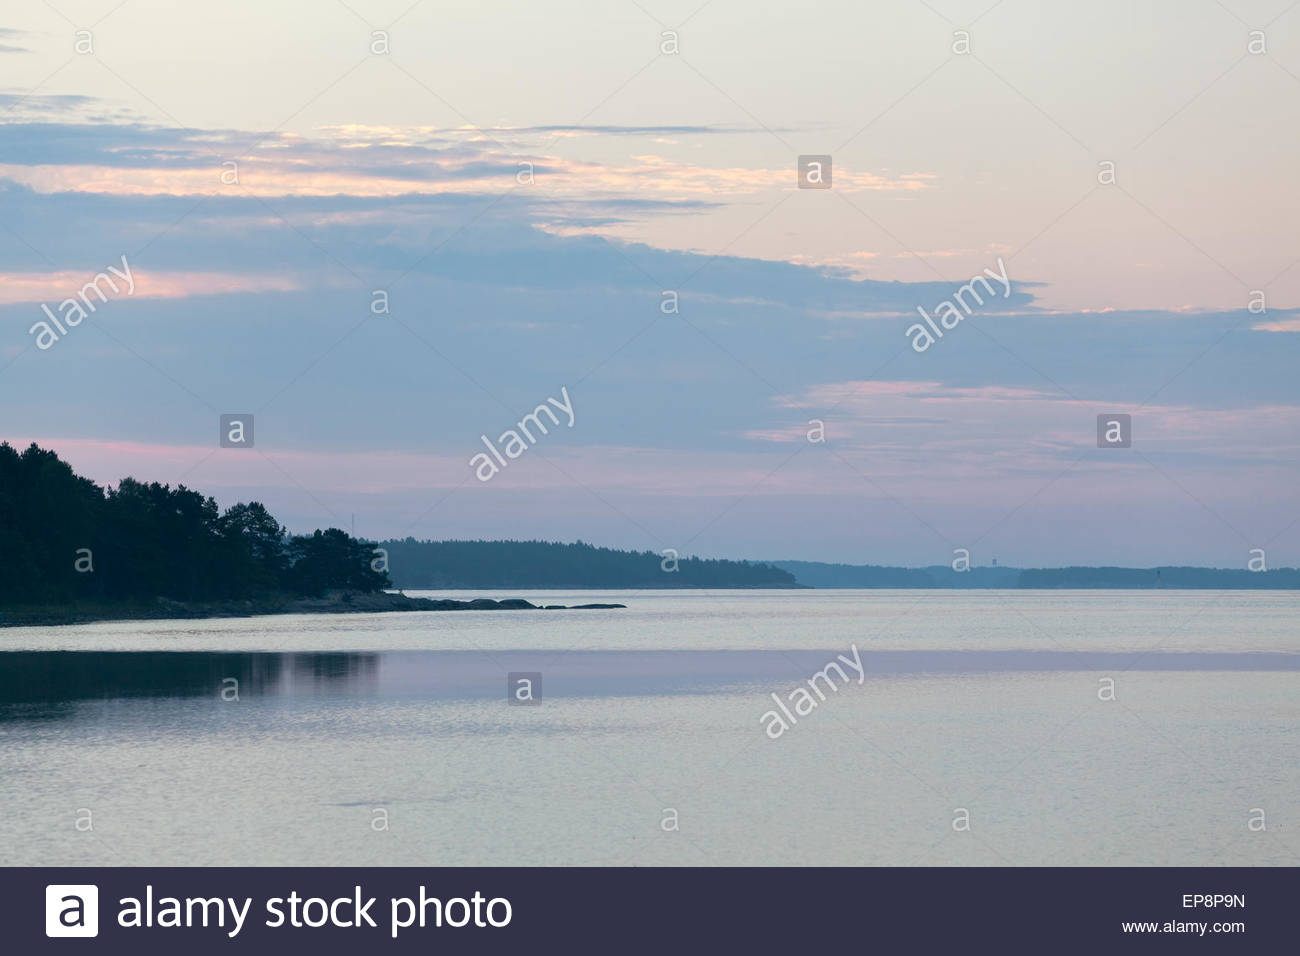 Early summer morning in Finland - Stock Image